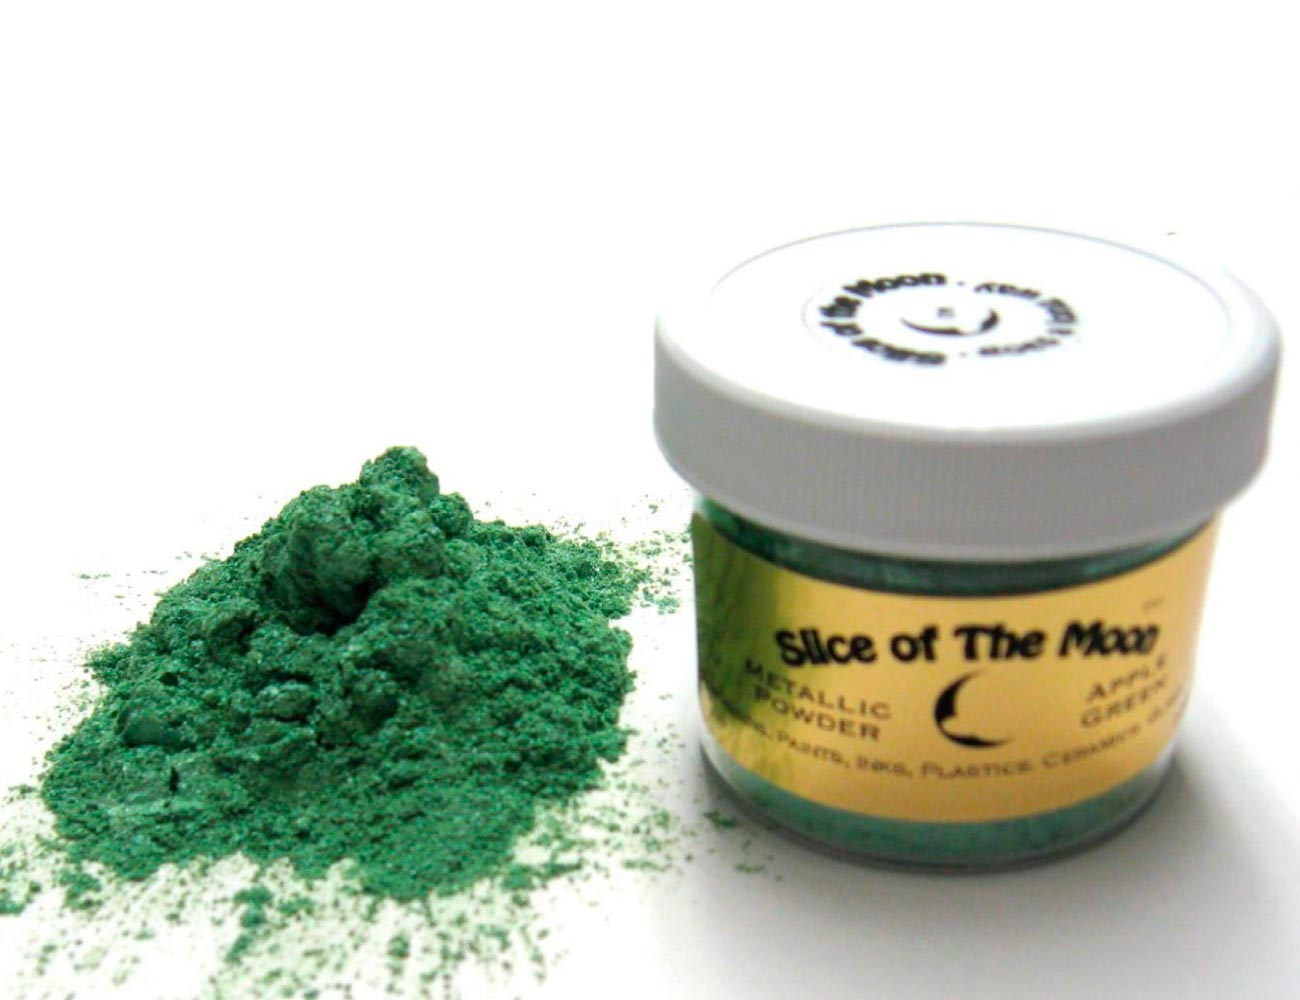 Apple Green Mica Powder 1oz, Green Metallic Powder